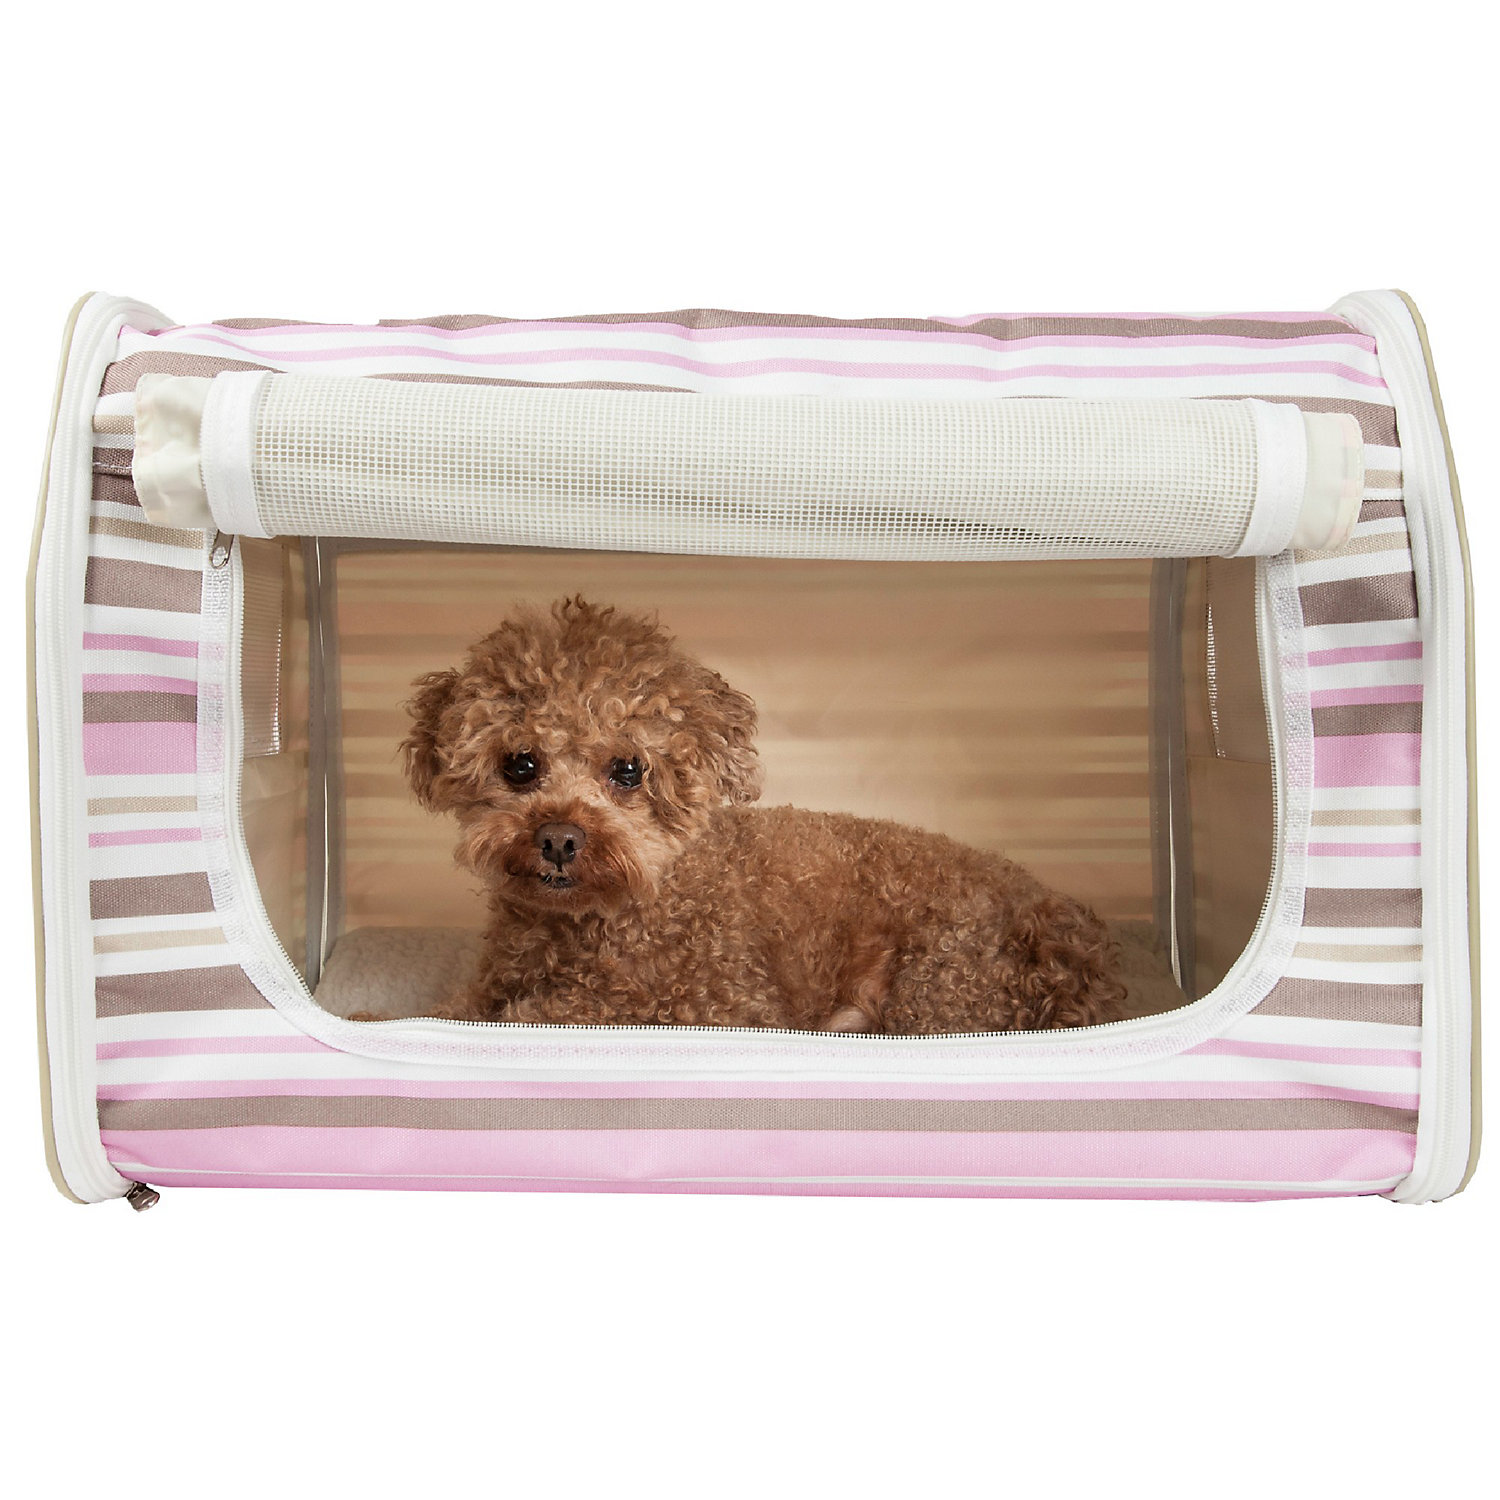 Pet Life Folding Zippered Lightweight WireFramed Easy Folding Pet Crate  Medium  Stripe Pattern Pink  White